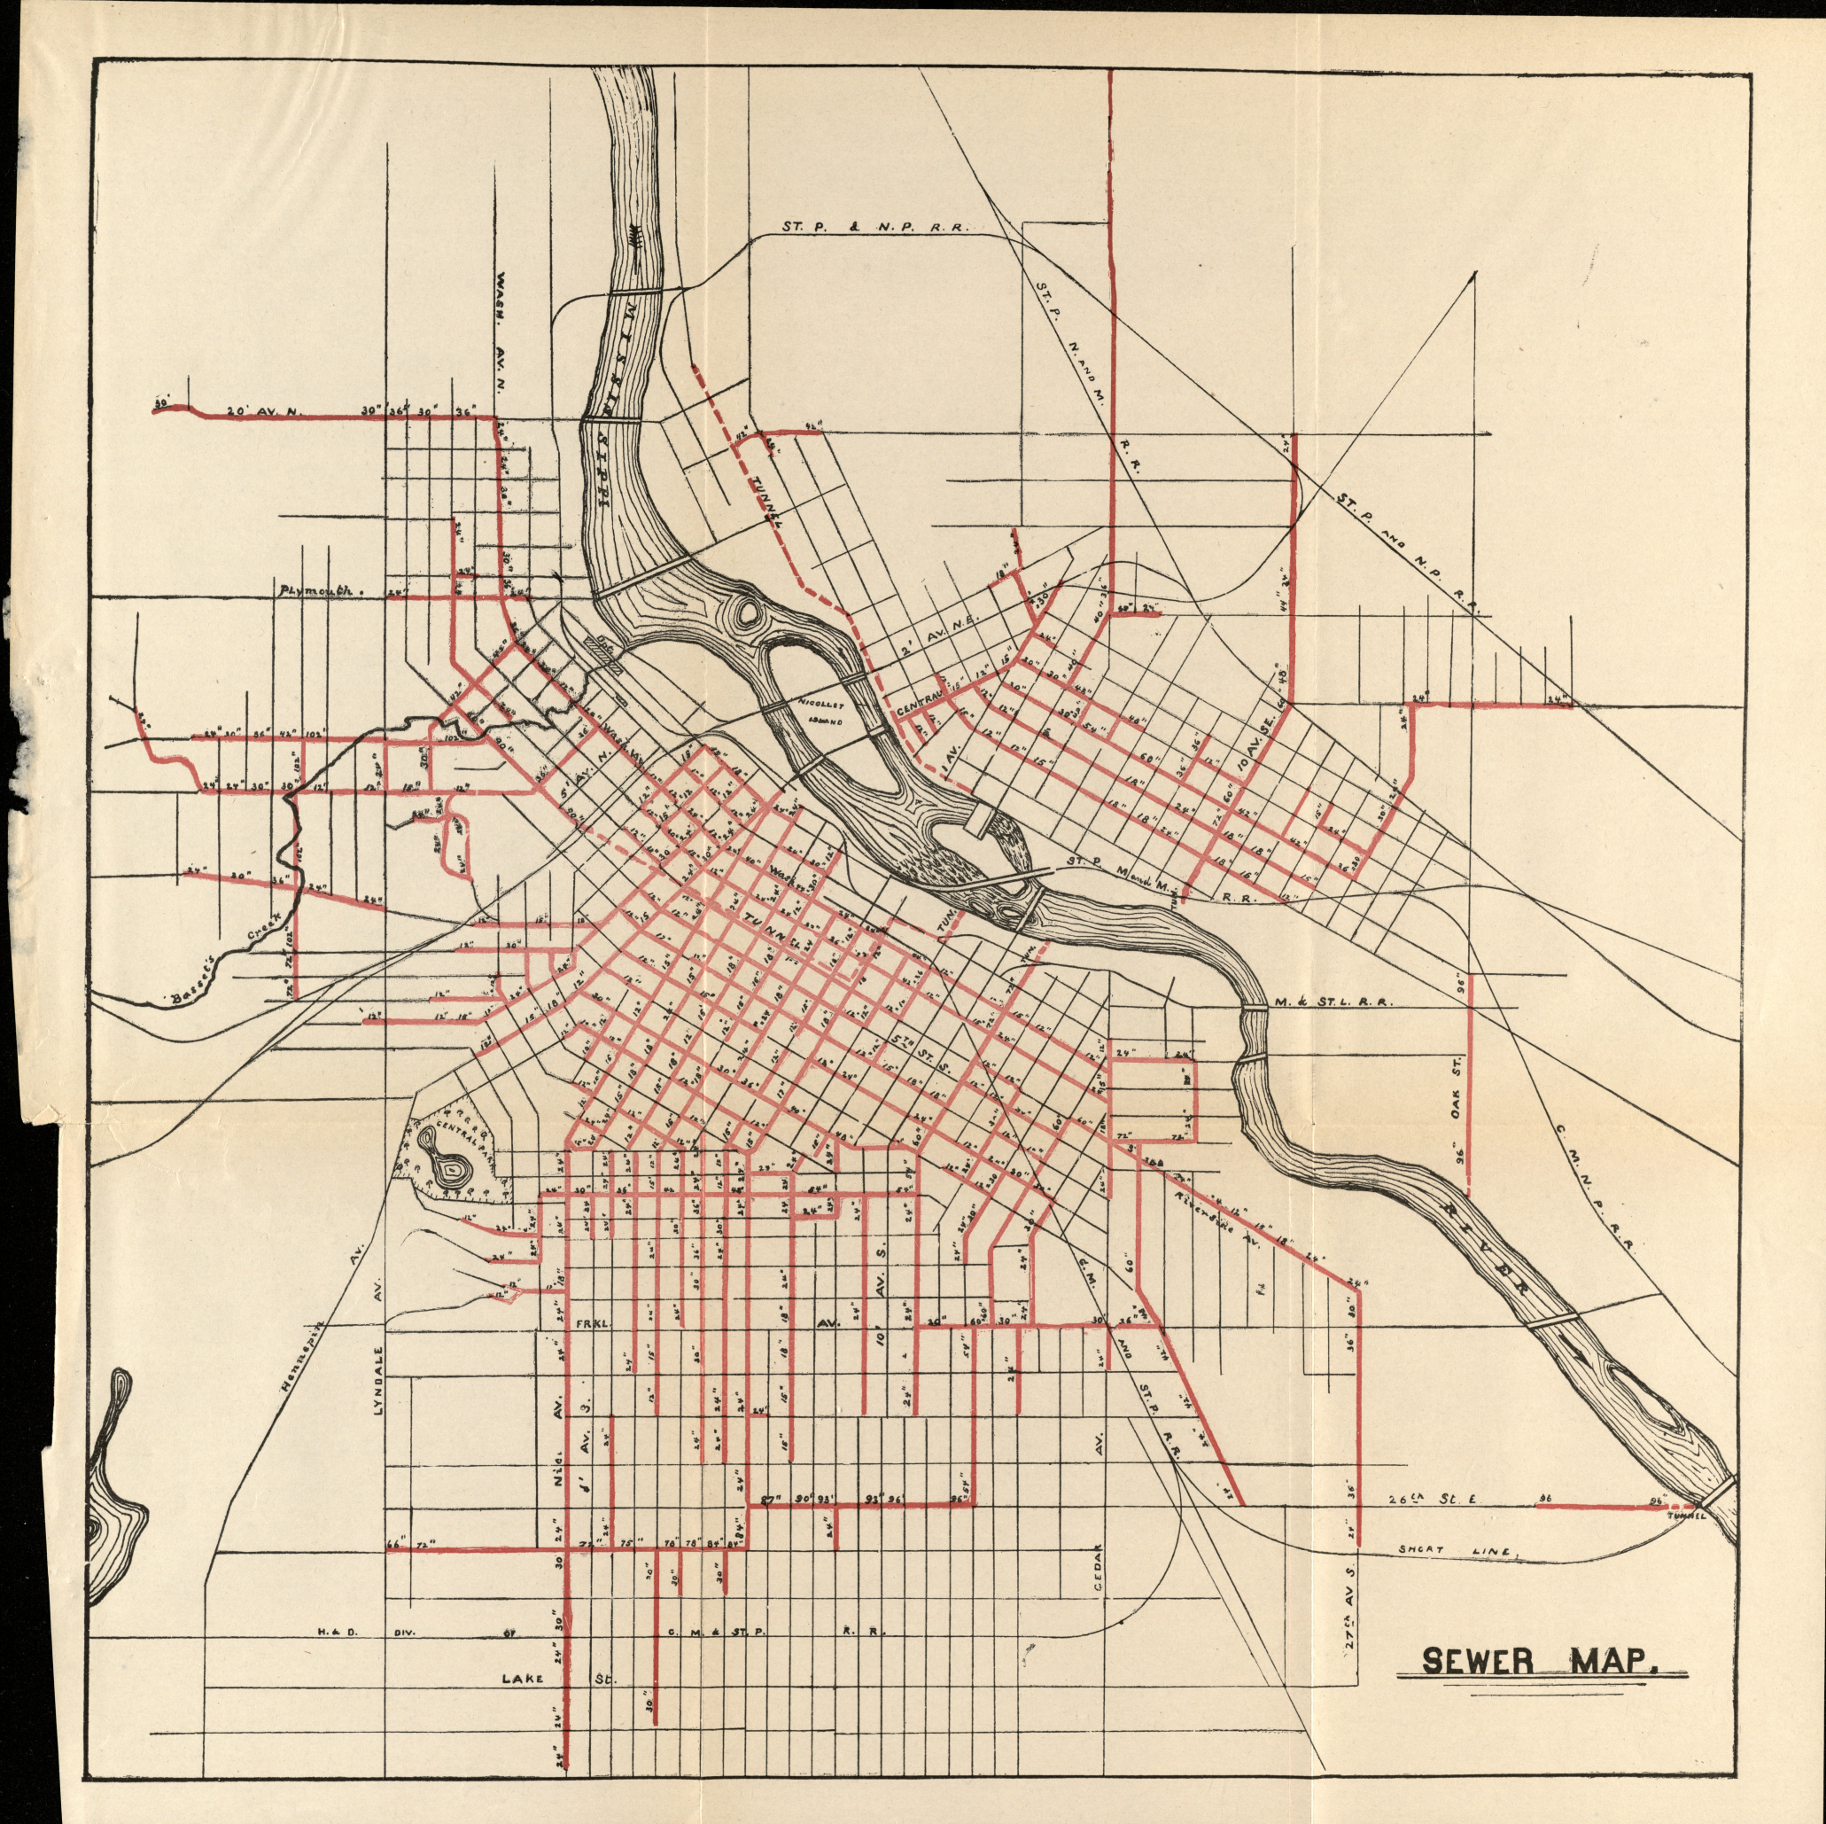 map of 1889 sewers